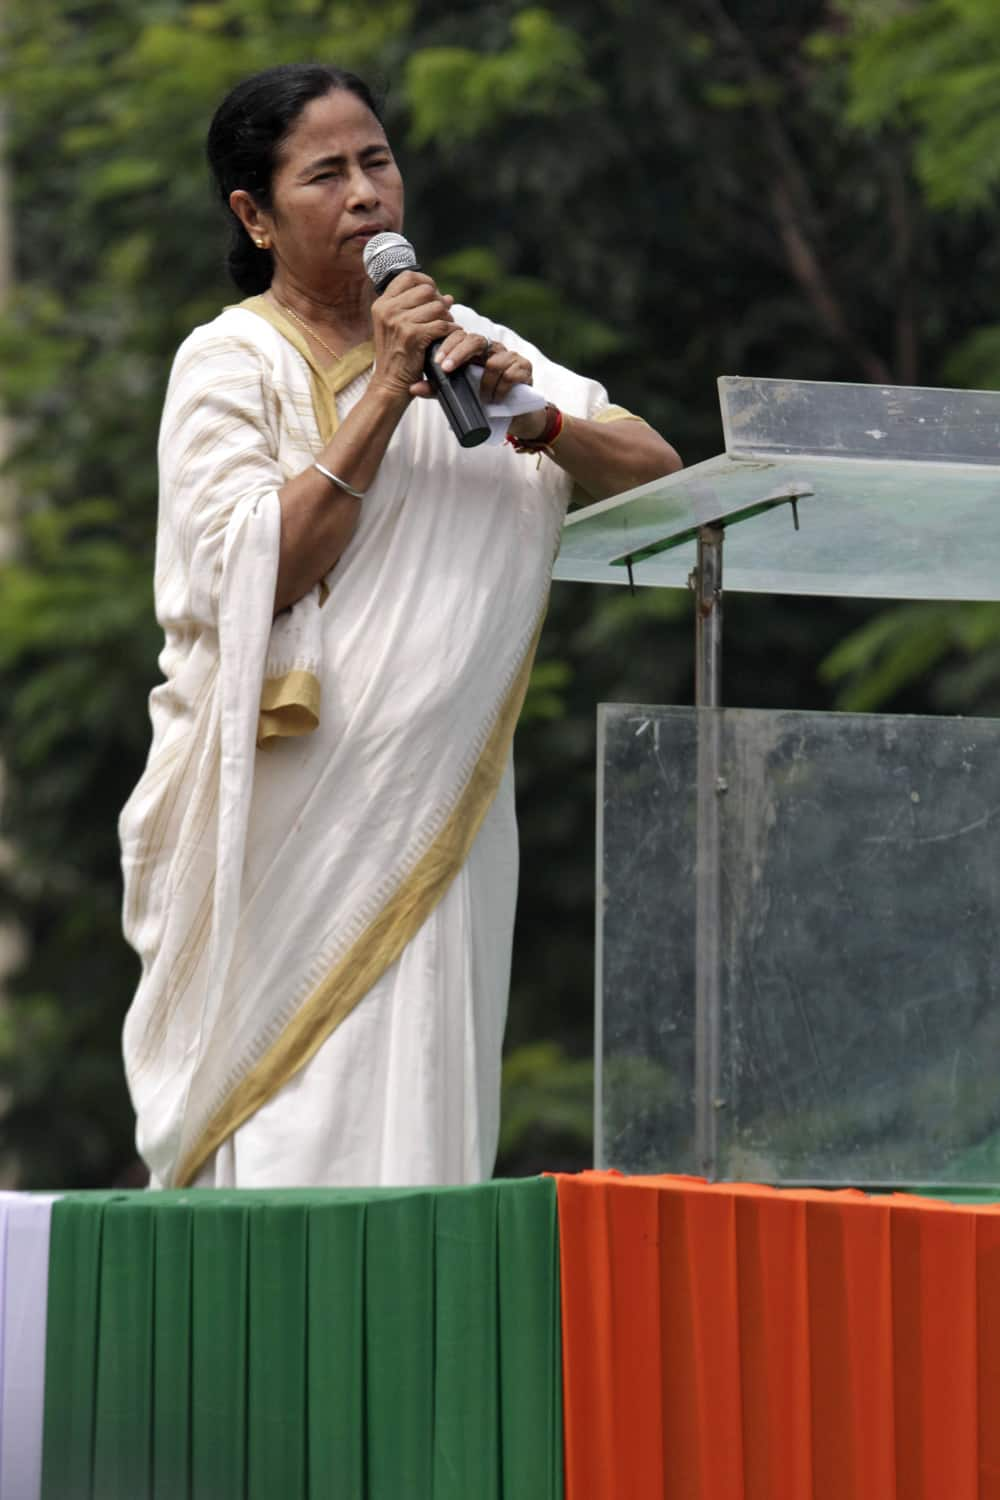 West Bengal state Chief Minister and Trinamul Congress leader Mamata Banerjee addresses a rally of students and youth in Kolkata.